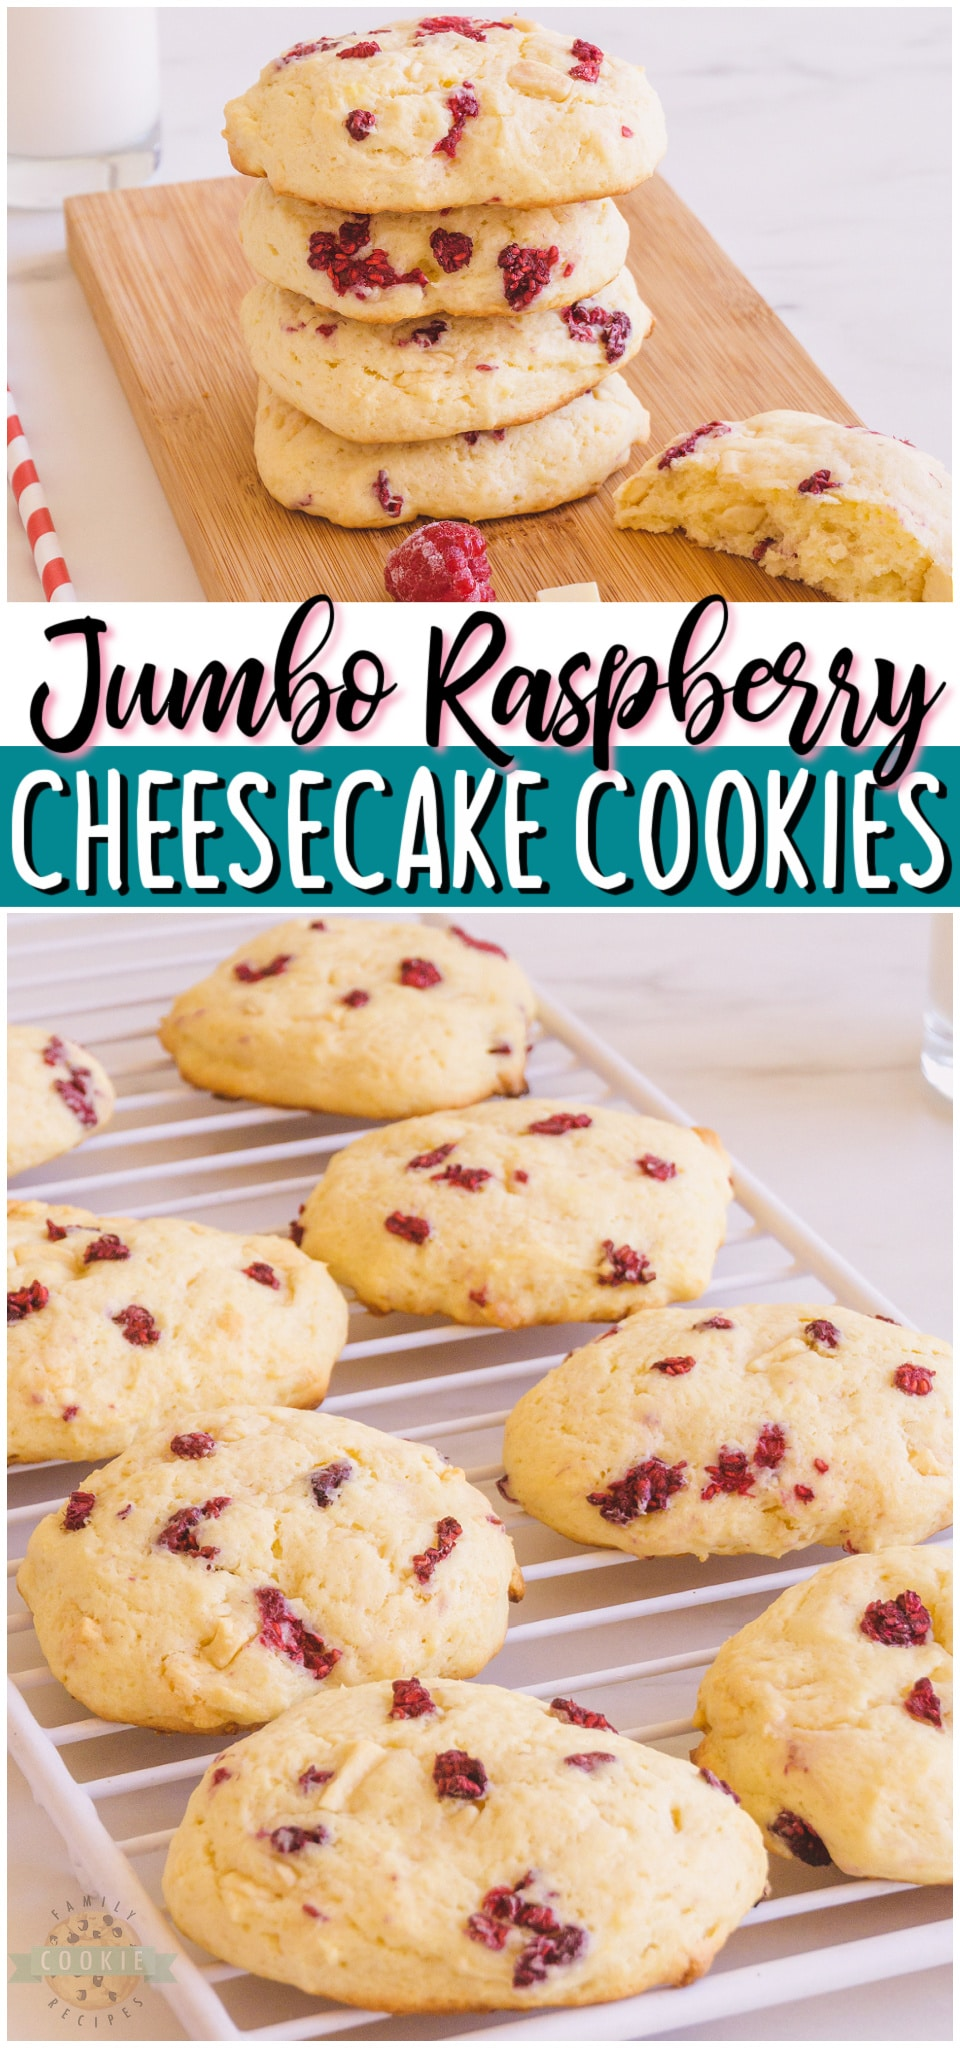 Giant raspberry cheesecake cookies are rich & indulgent cookies made with cream cheese, white chocolate & raspberries! Jumbo sized cheesecake cookies with bright raspberry flavor that everyone loves!#cookies #raspberry #cheesecake #bakerystyle #jumbo #baking #dessert #easyrecipe from FAMILY COOKIE RECIPES via @buttergirls